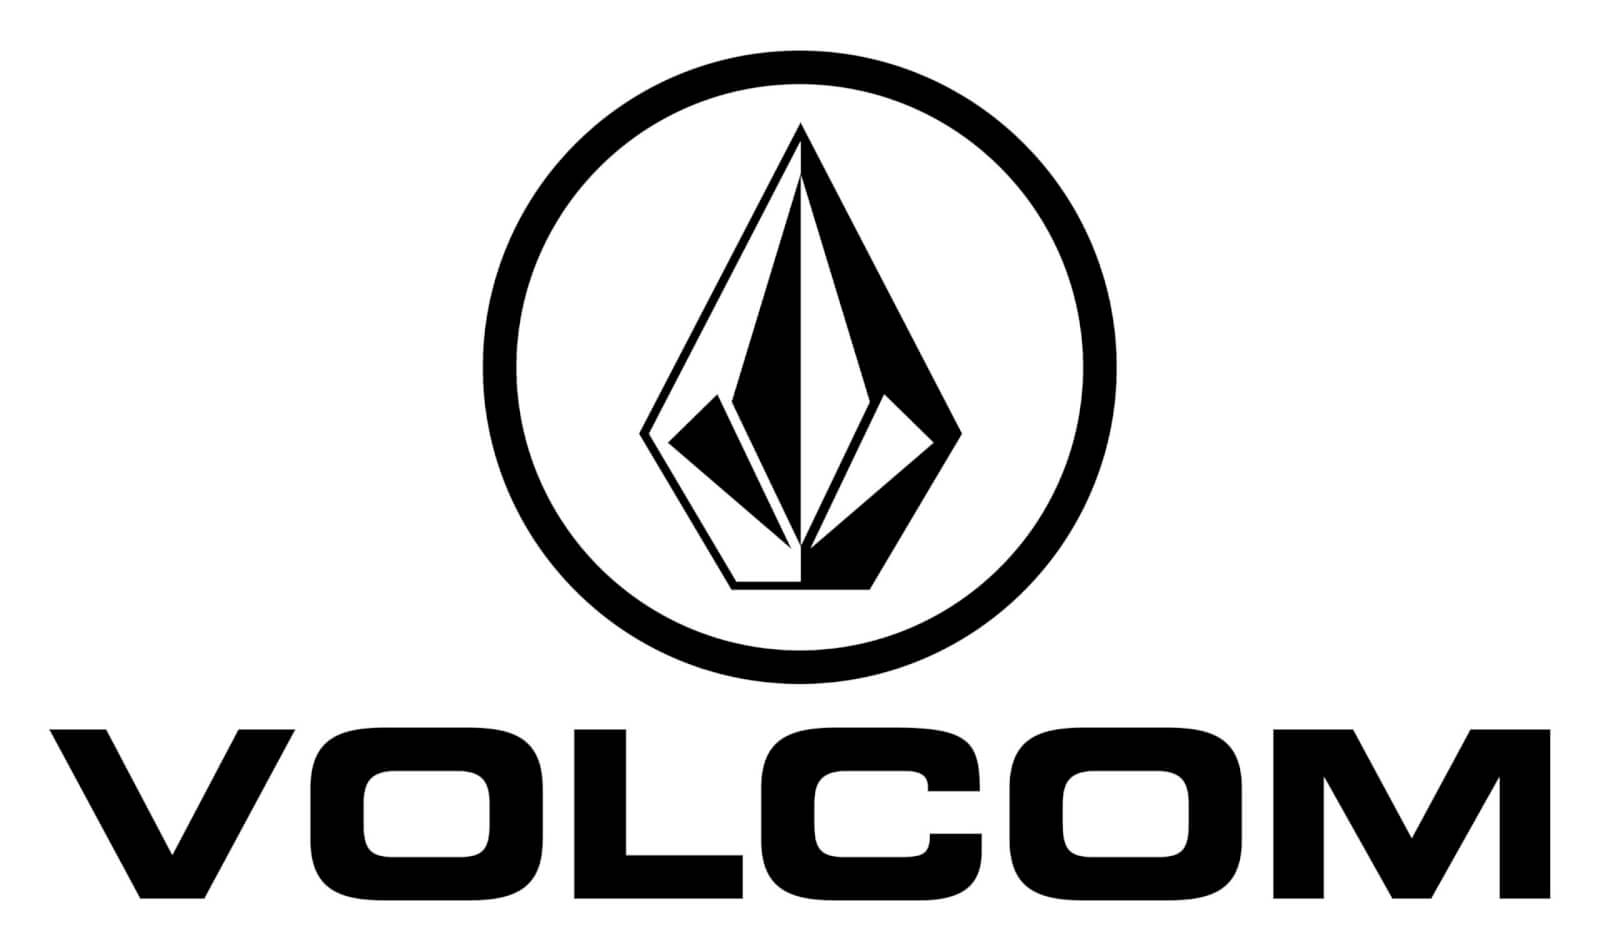 Volcom boosts their ROAS by 34% using Bidnamic's machine learning solution : Bidnamic